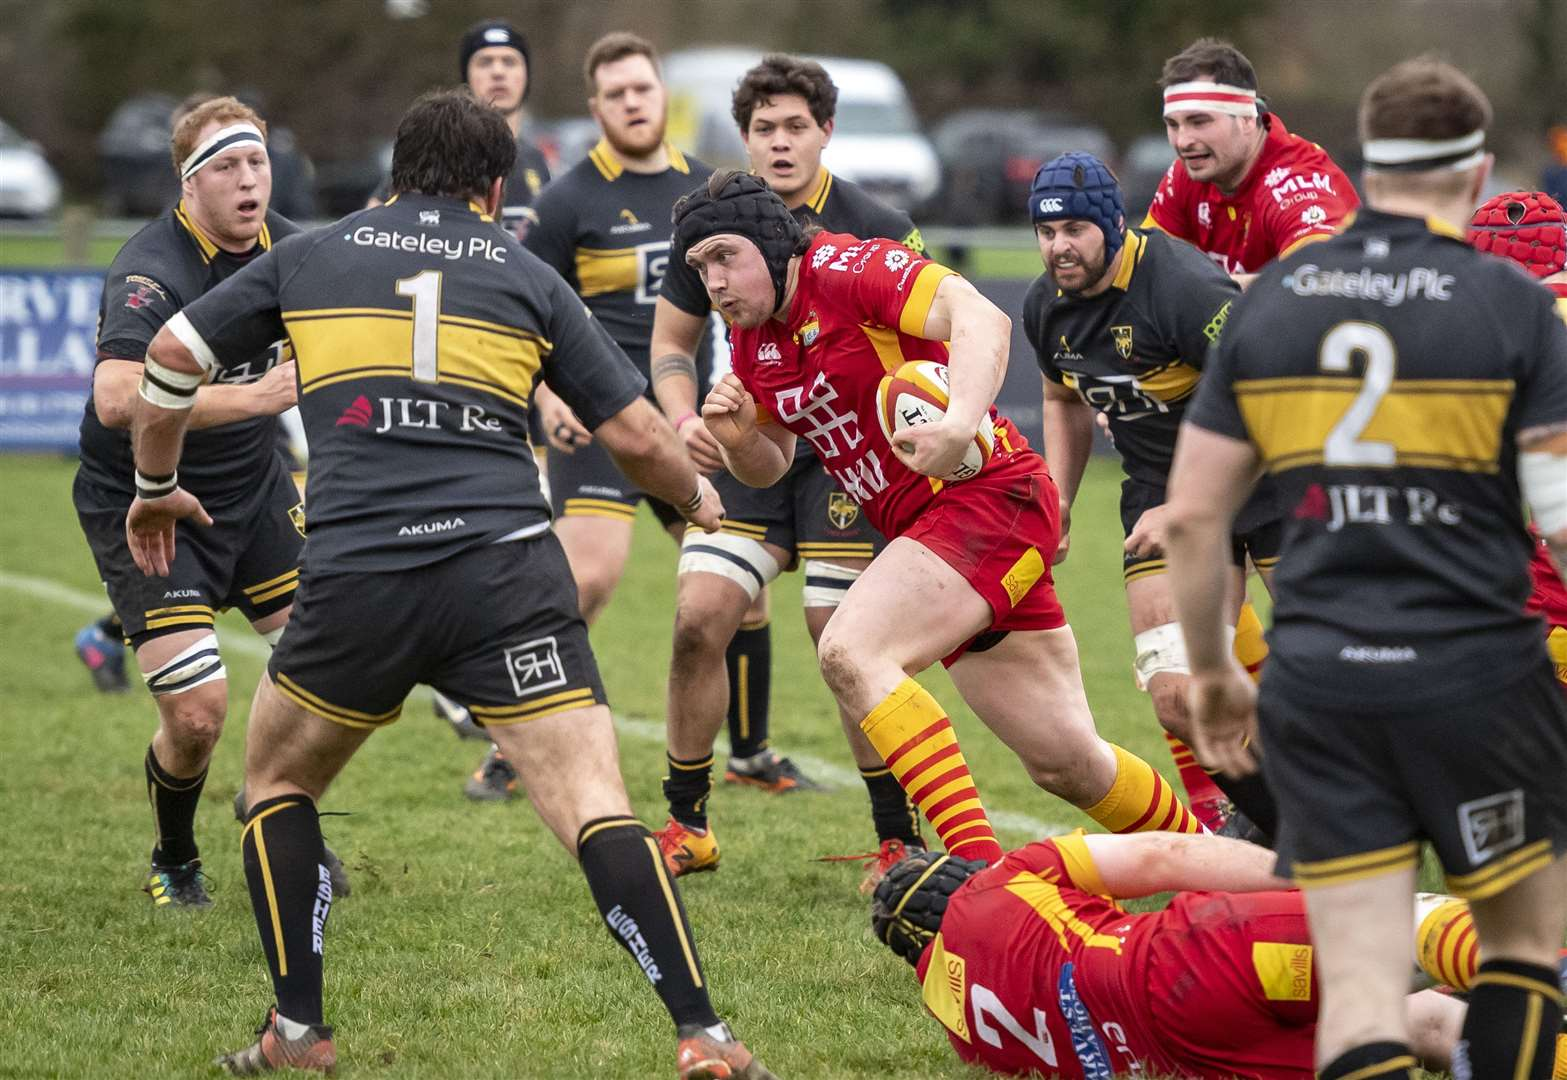 Henry Peck try seals Cambridge victory over Rotherham Titans in National League One